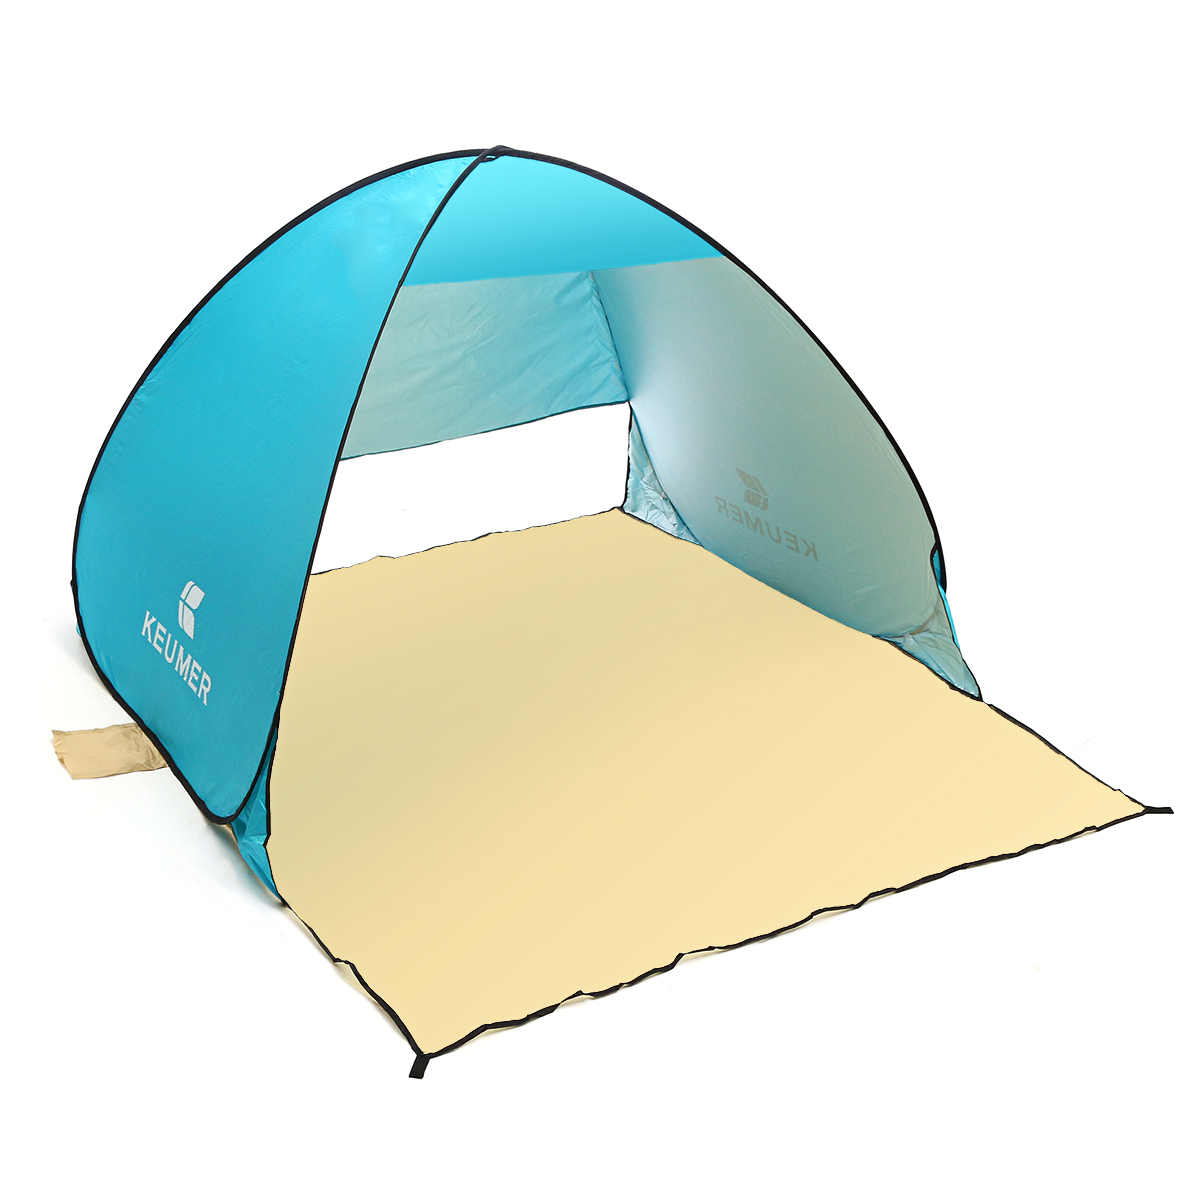 150x180x110cm Pop Up Outdoor Camping Fishing Tent Anti-